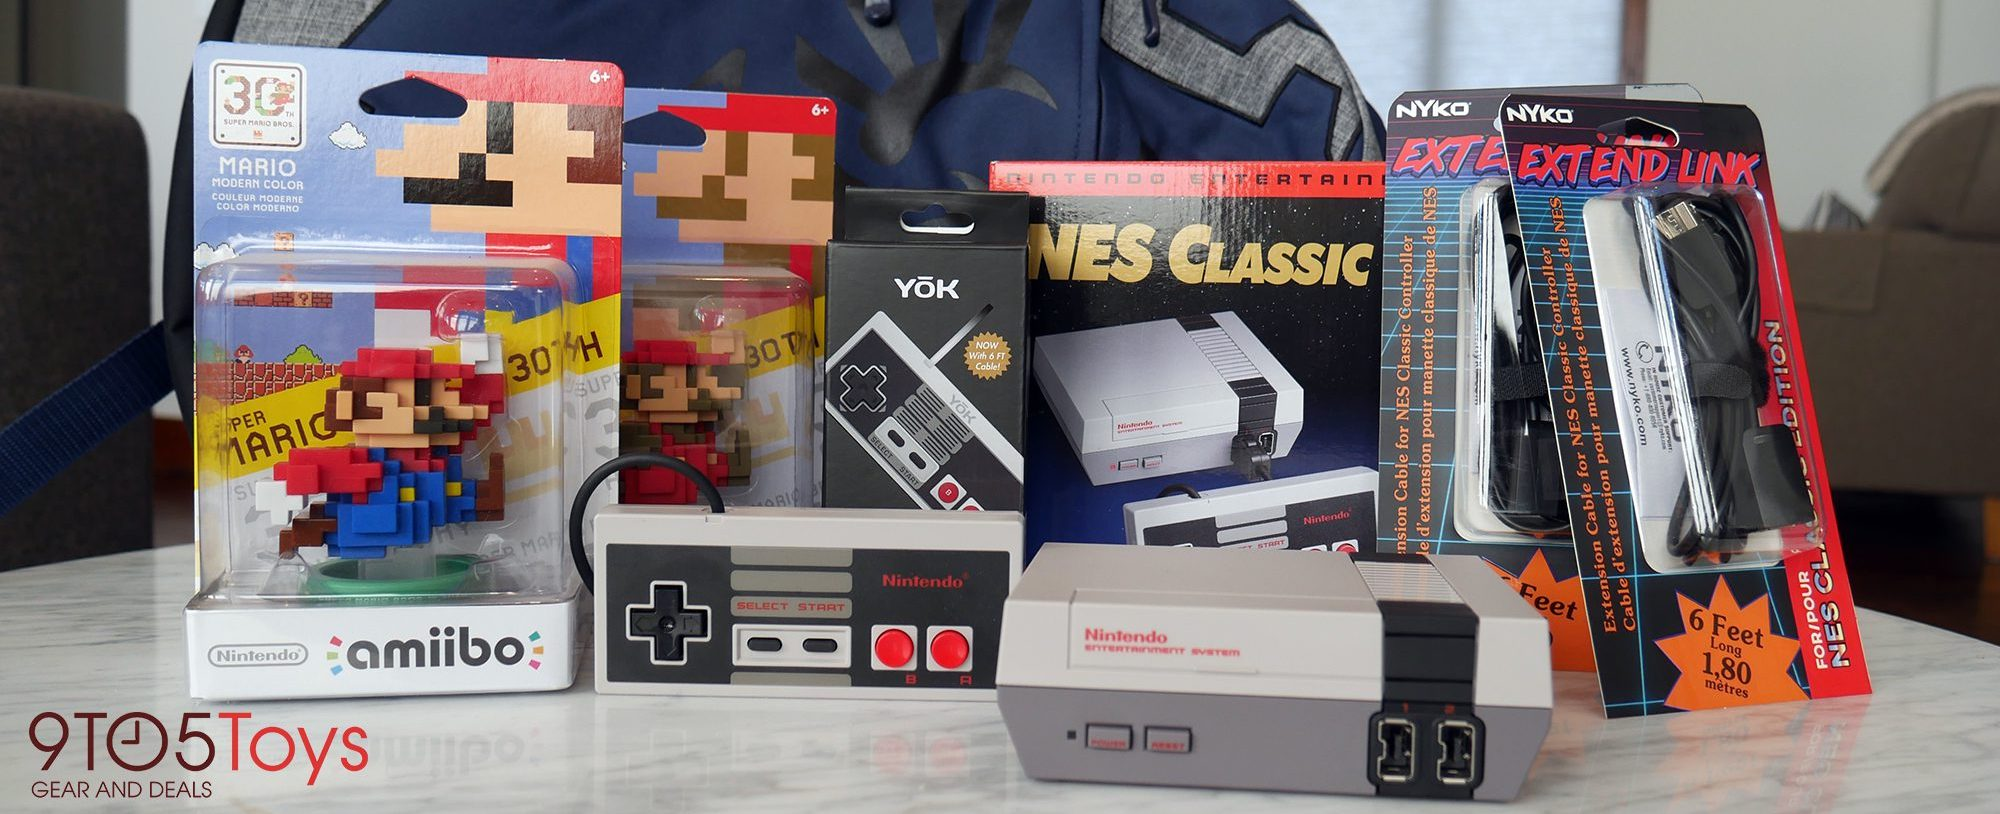 nes-classic-giveaway-9to5toys-1